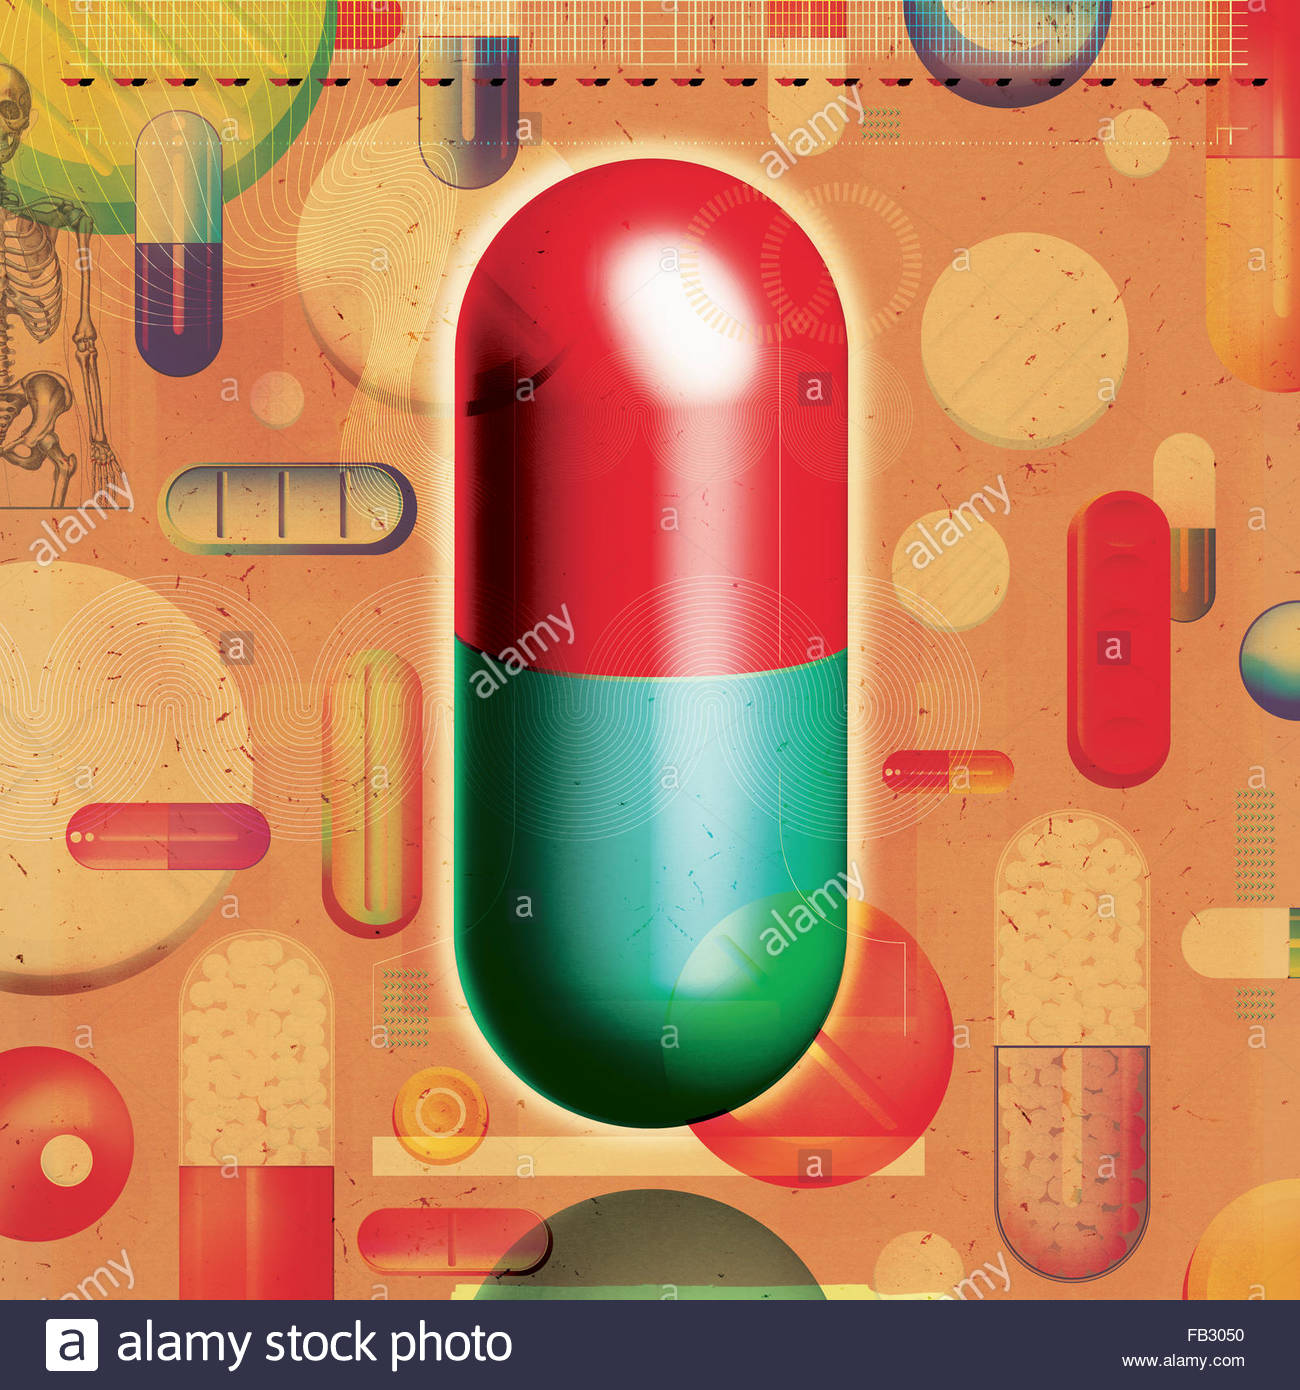 Large capsule standing out from the crowd of various pills and medicine - Stock Image